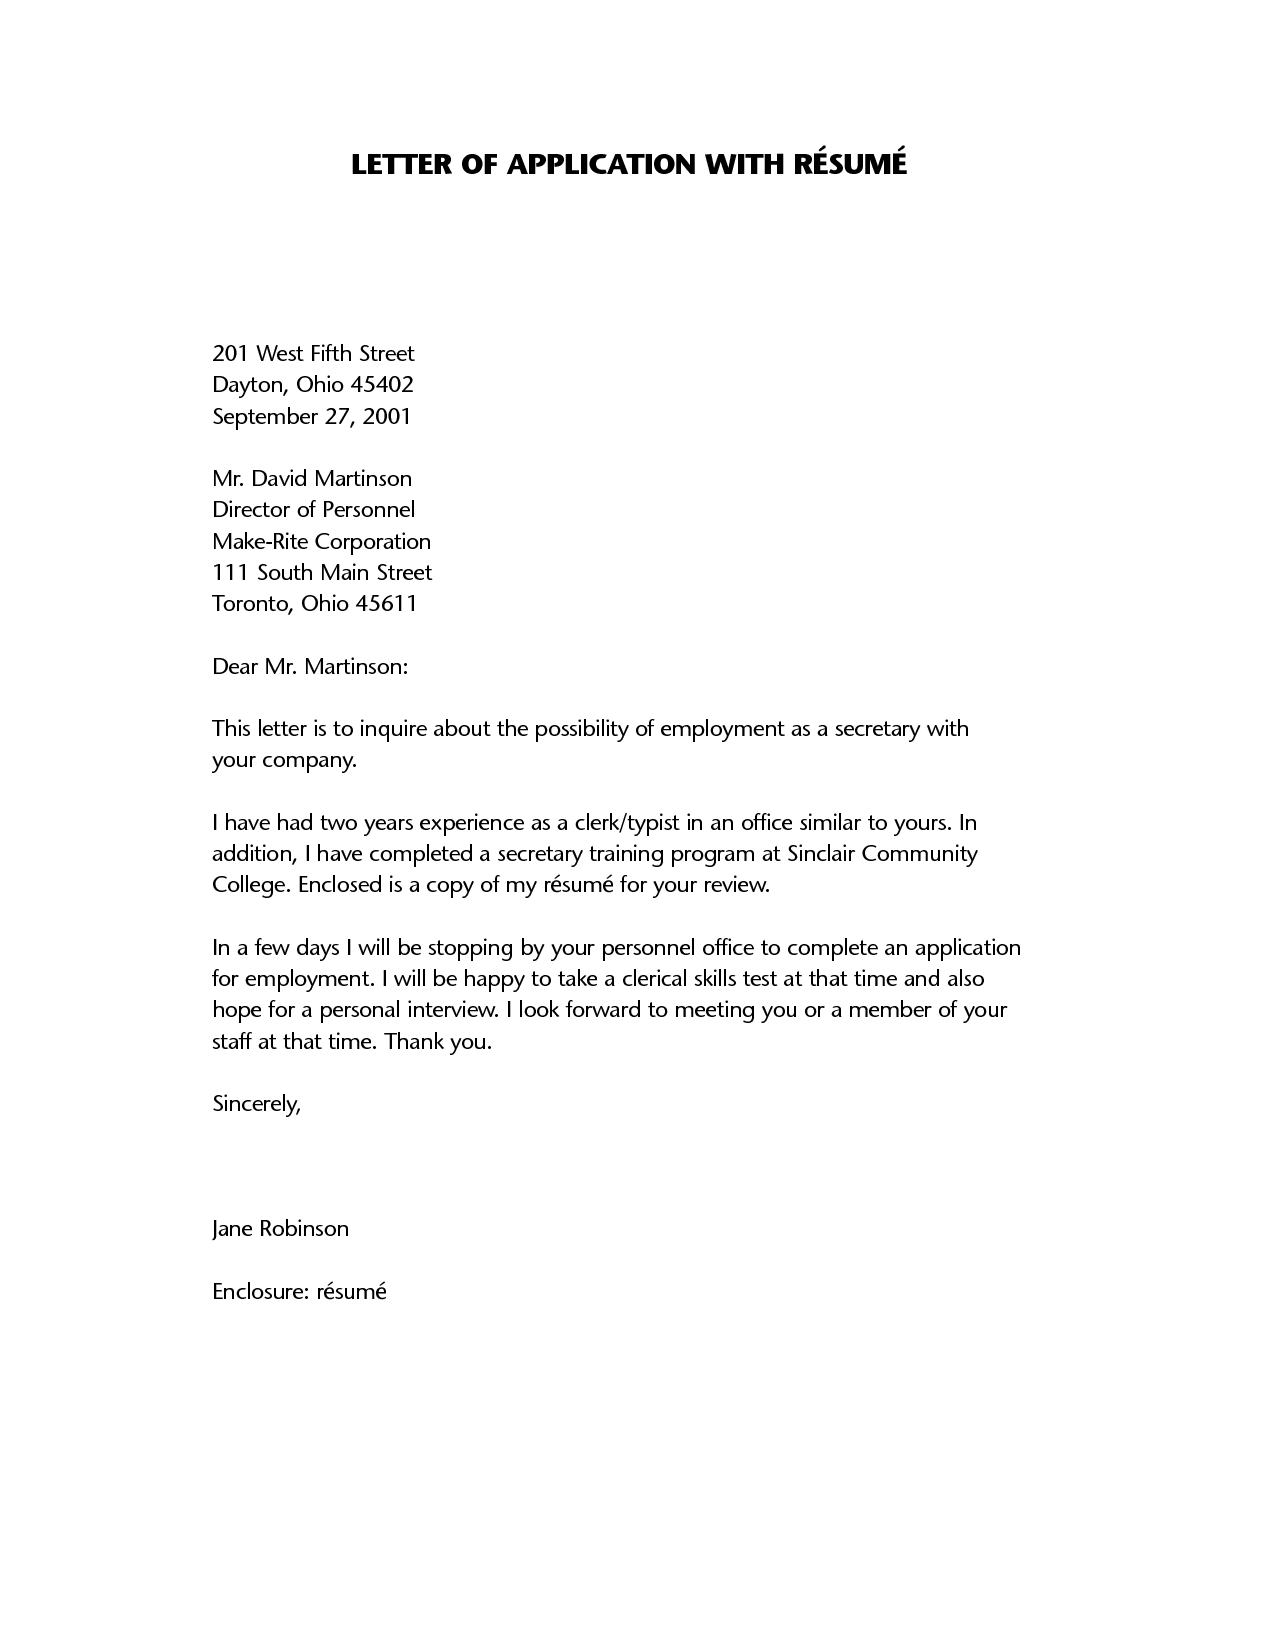 Resume Application Letter - A letter of application is a document ...